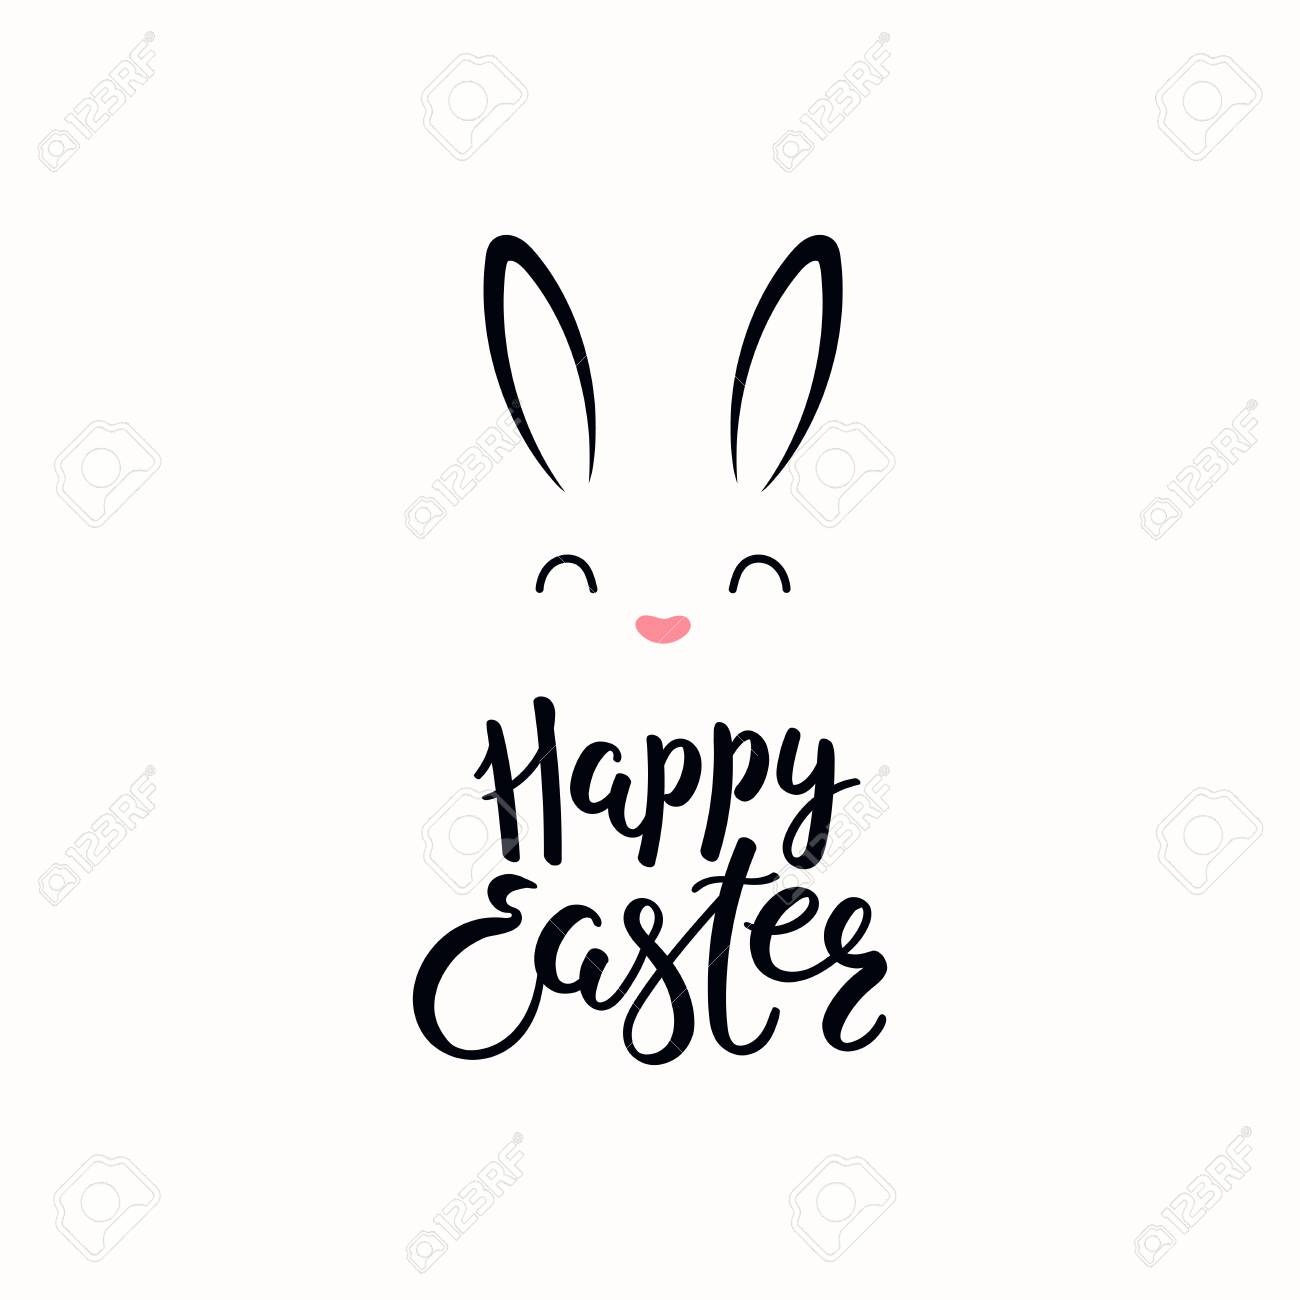 Hand written calligraphic lettering quote Happy Easter, with bunny face. Isolated objects on white background. Hand drawn vector illustration. Design concept, element for card, banner, invitation. - 117371798